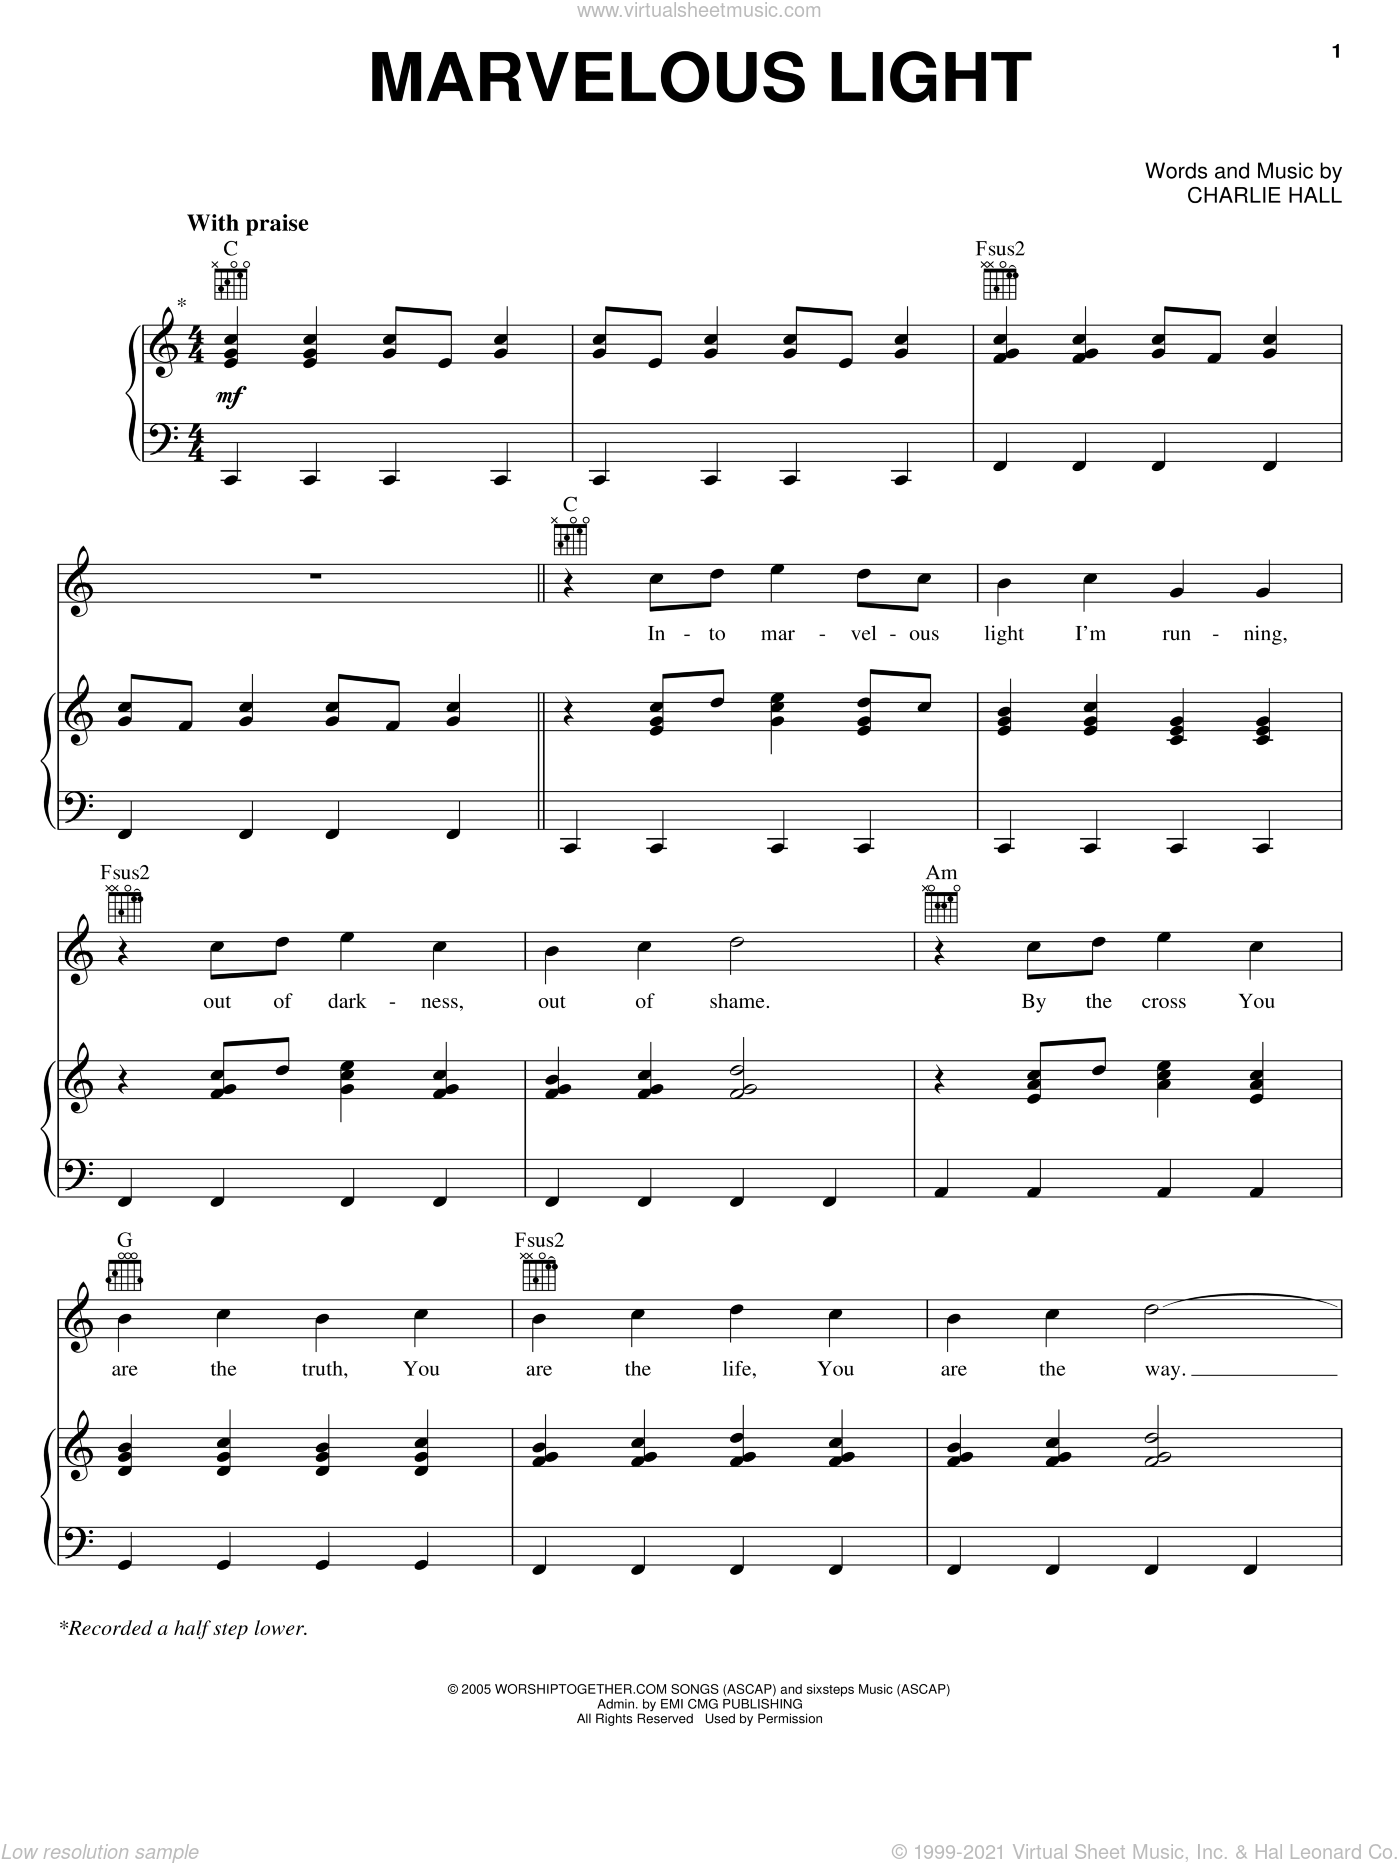 Marvelous Light sheet music for voice, piano or guitar by Charlie Hall. Score Image Preview.